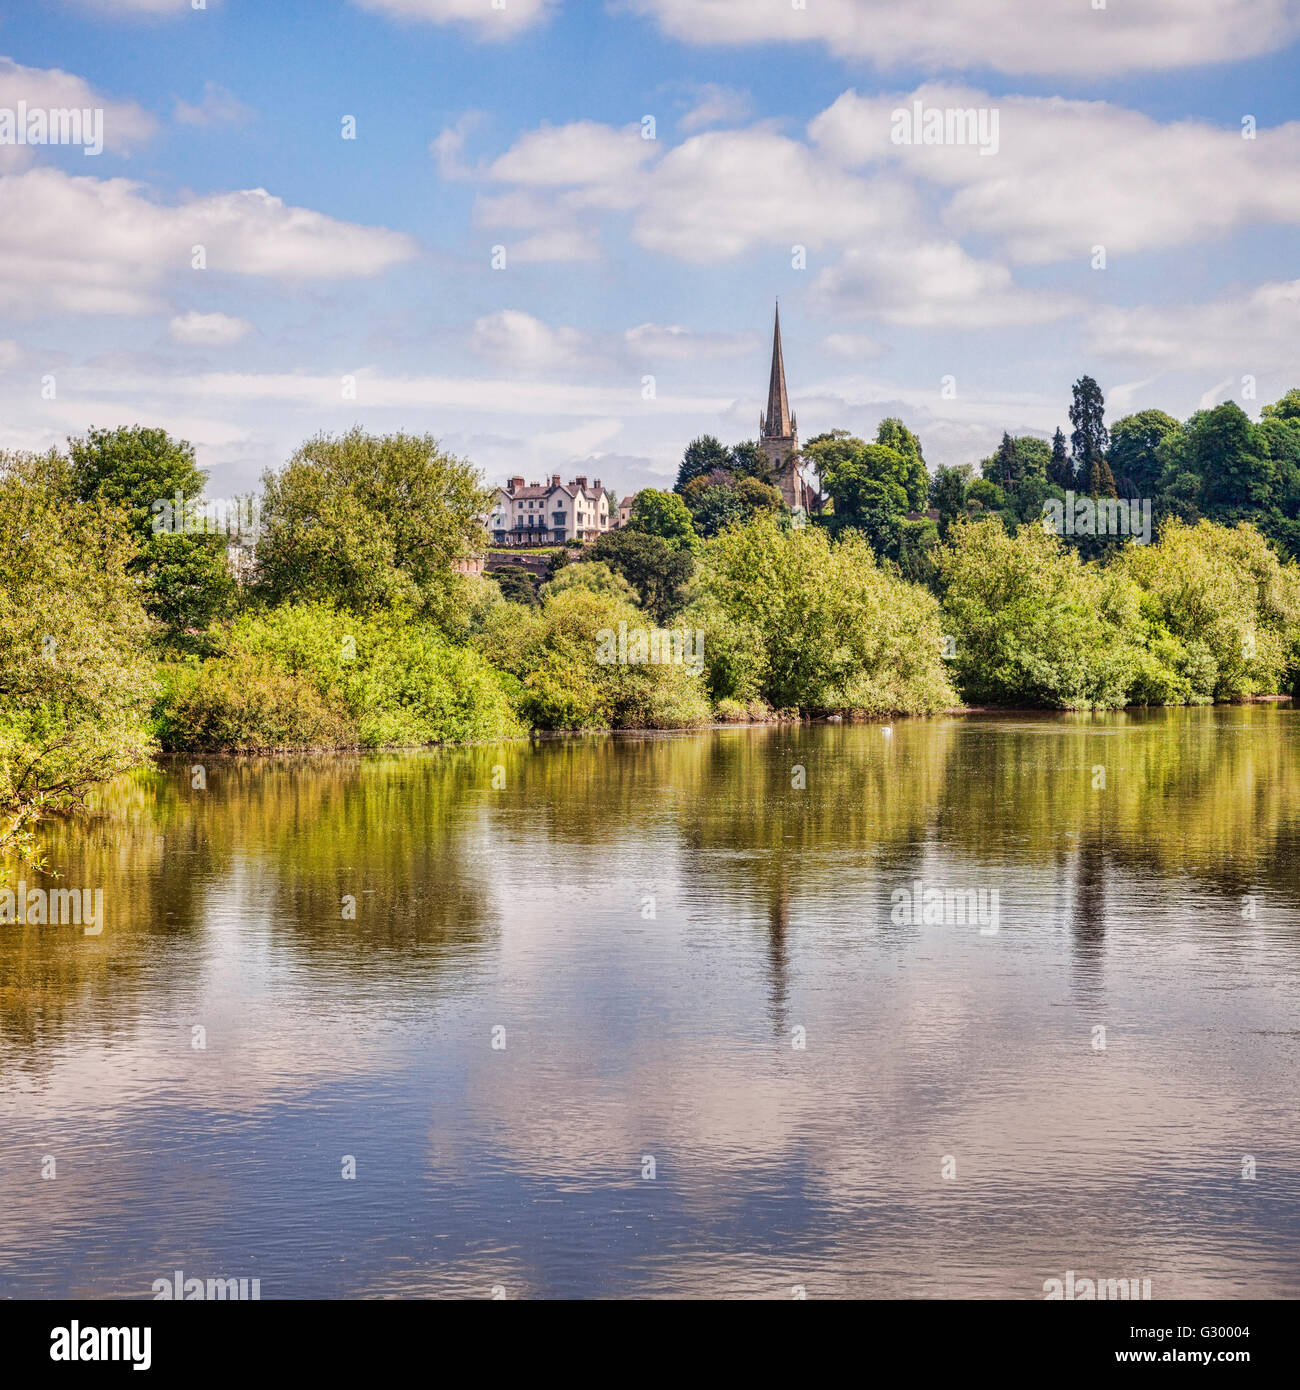 Ross-on-Wye and the River Wye, Herefordshire, England, UK - Stock Image